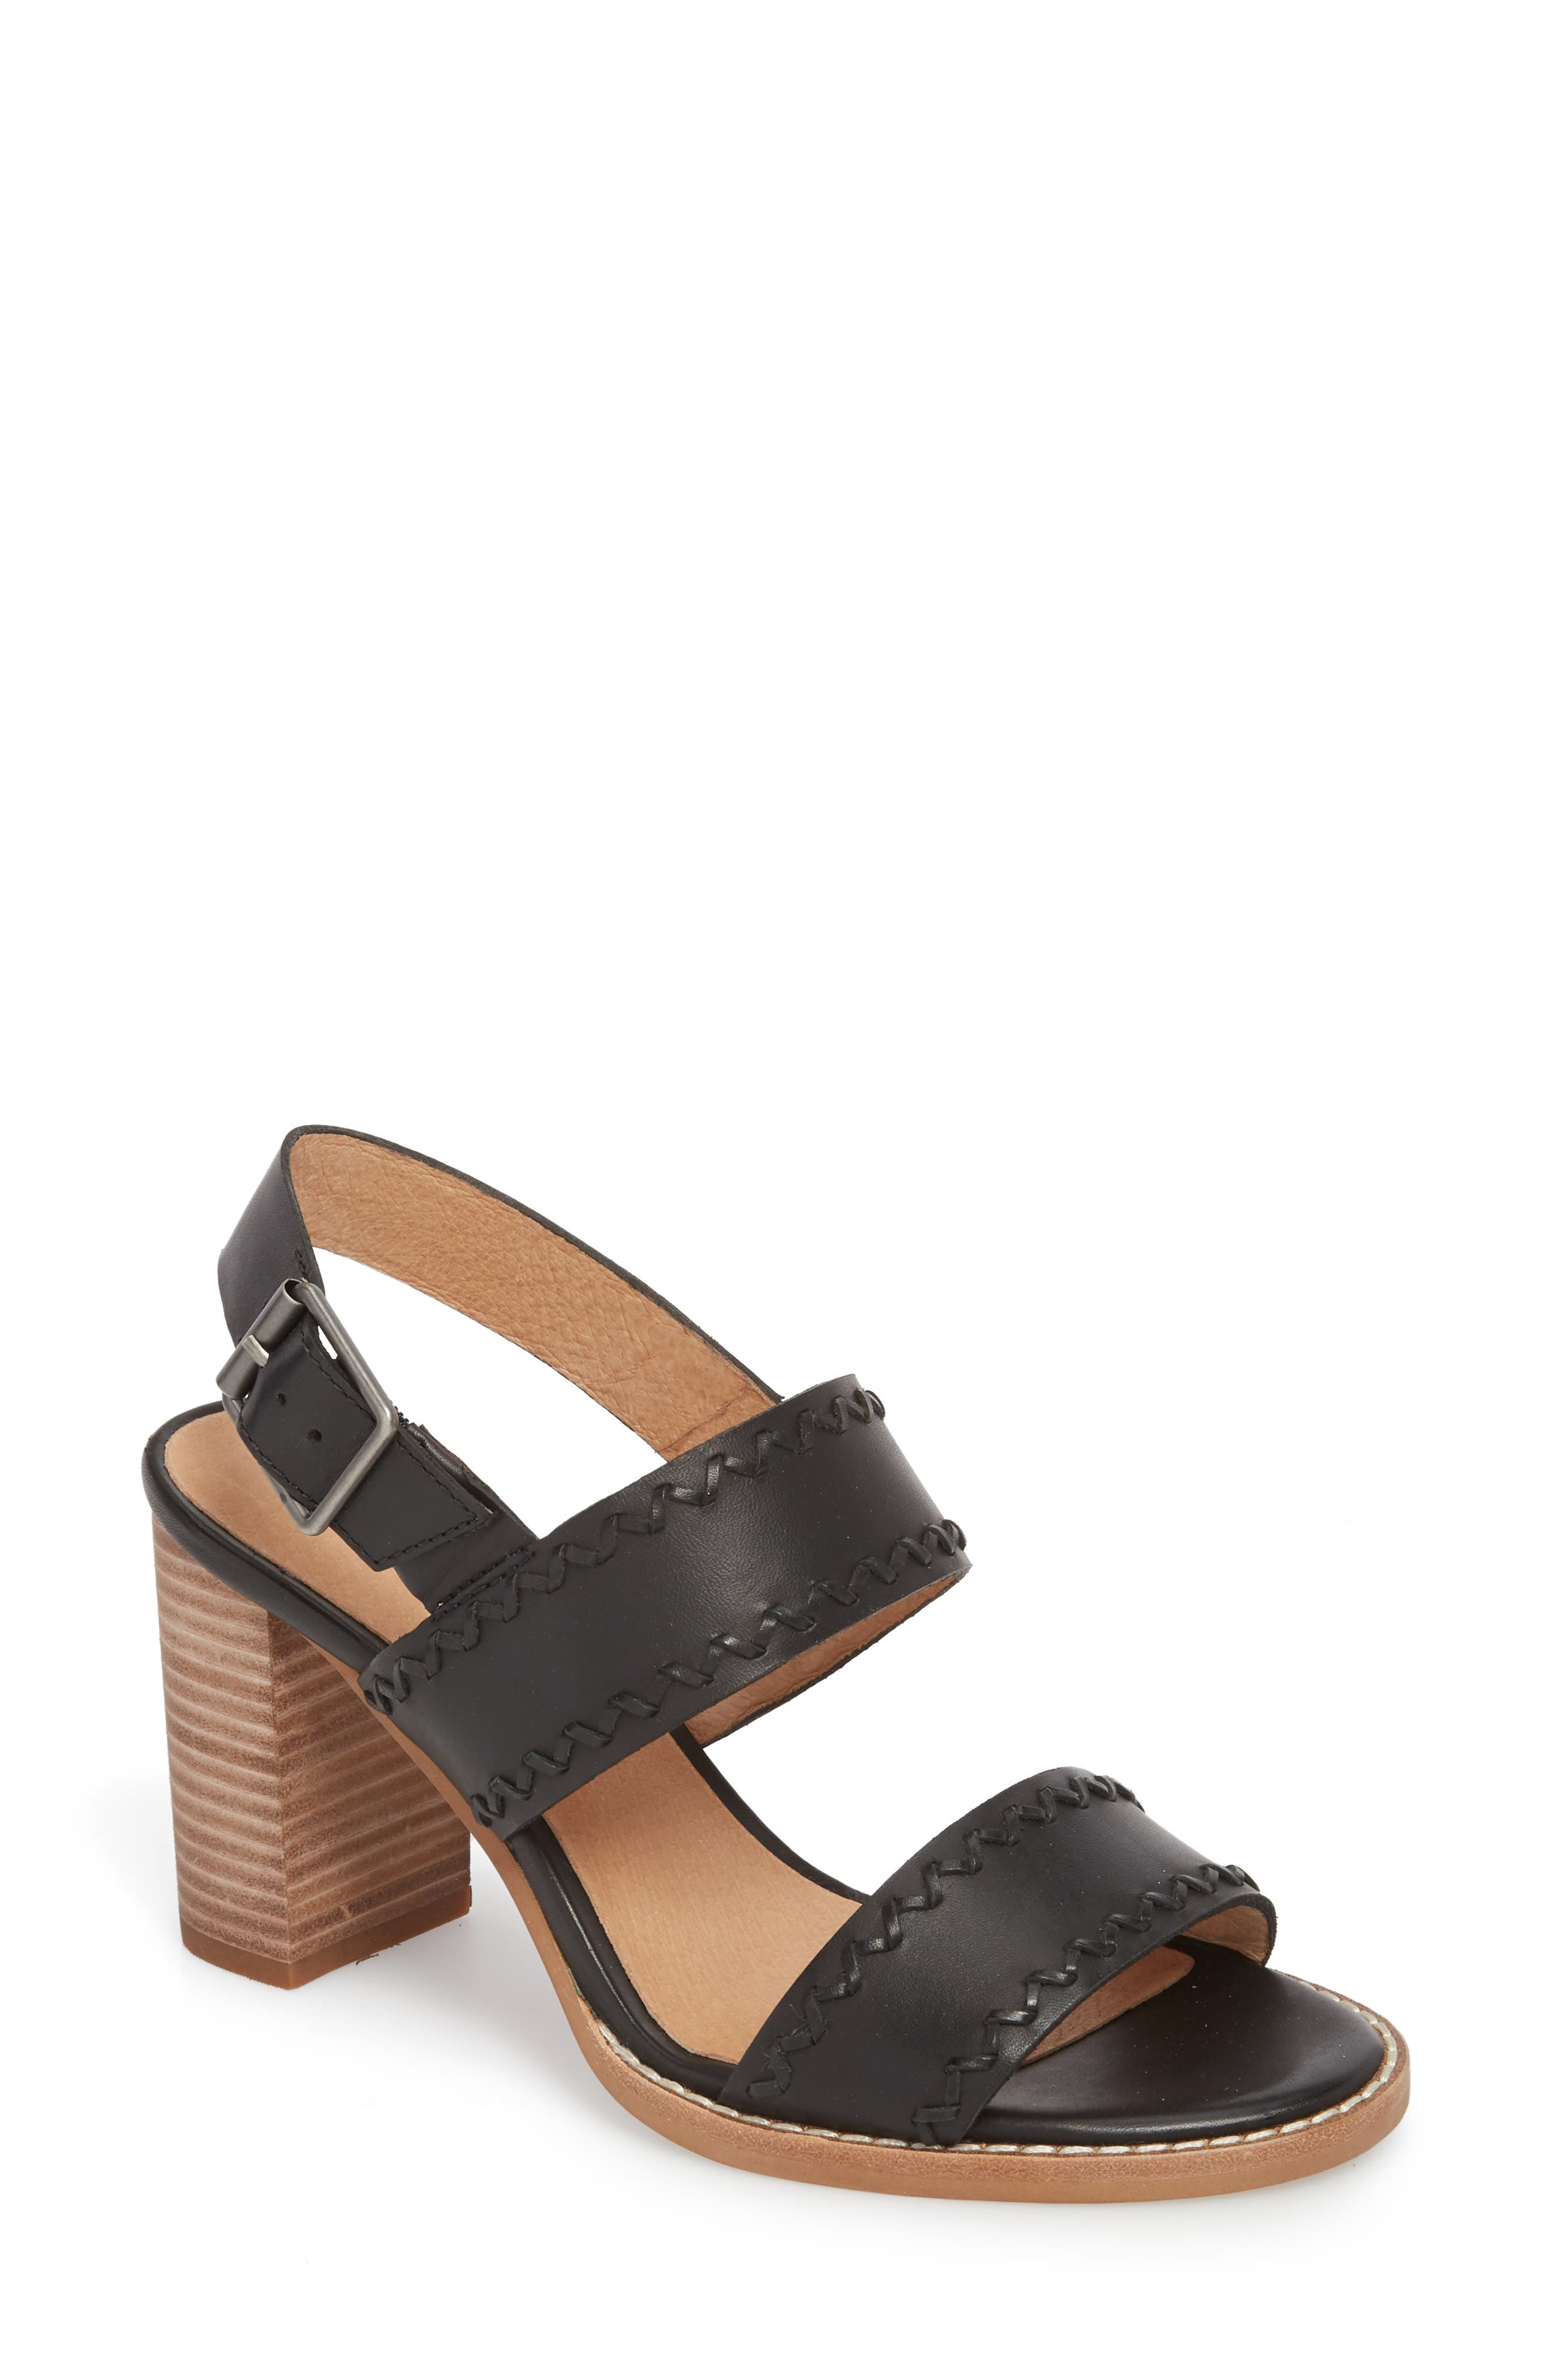 Angie Sandal,                         Main,                         color, 001